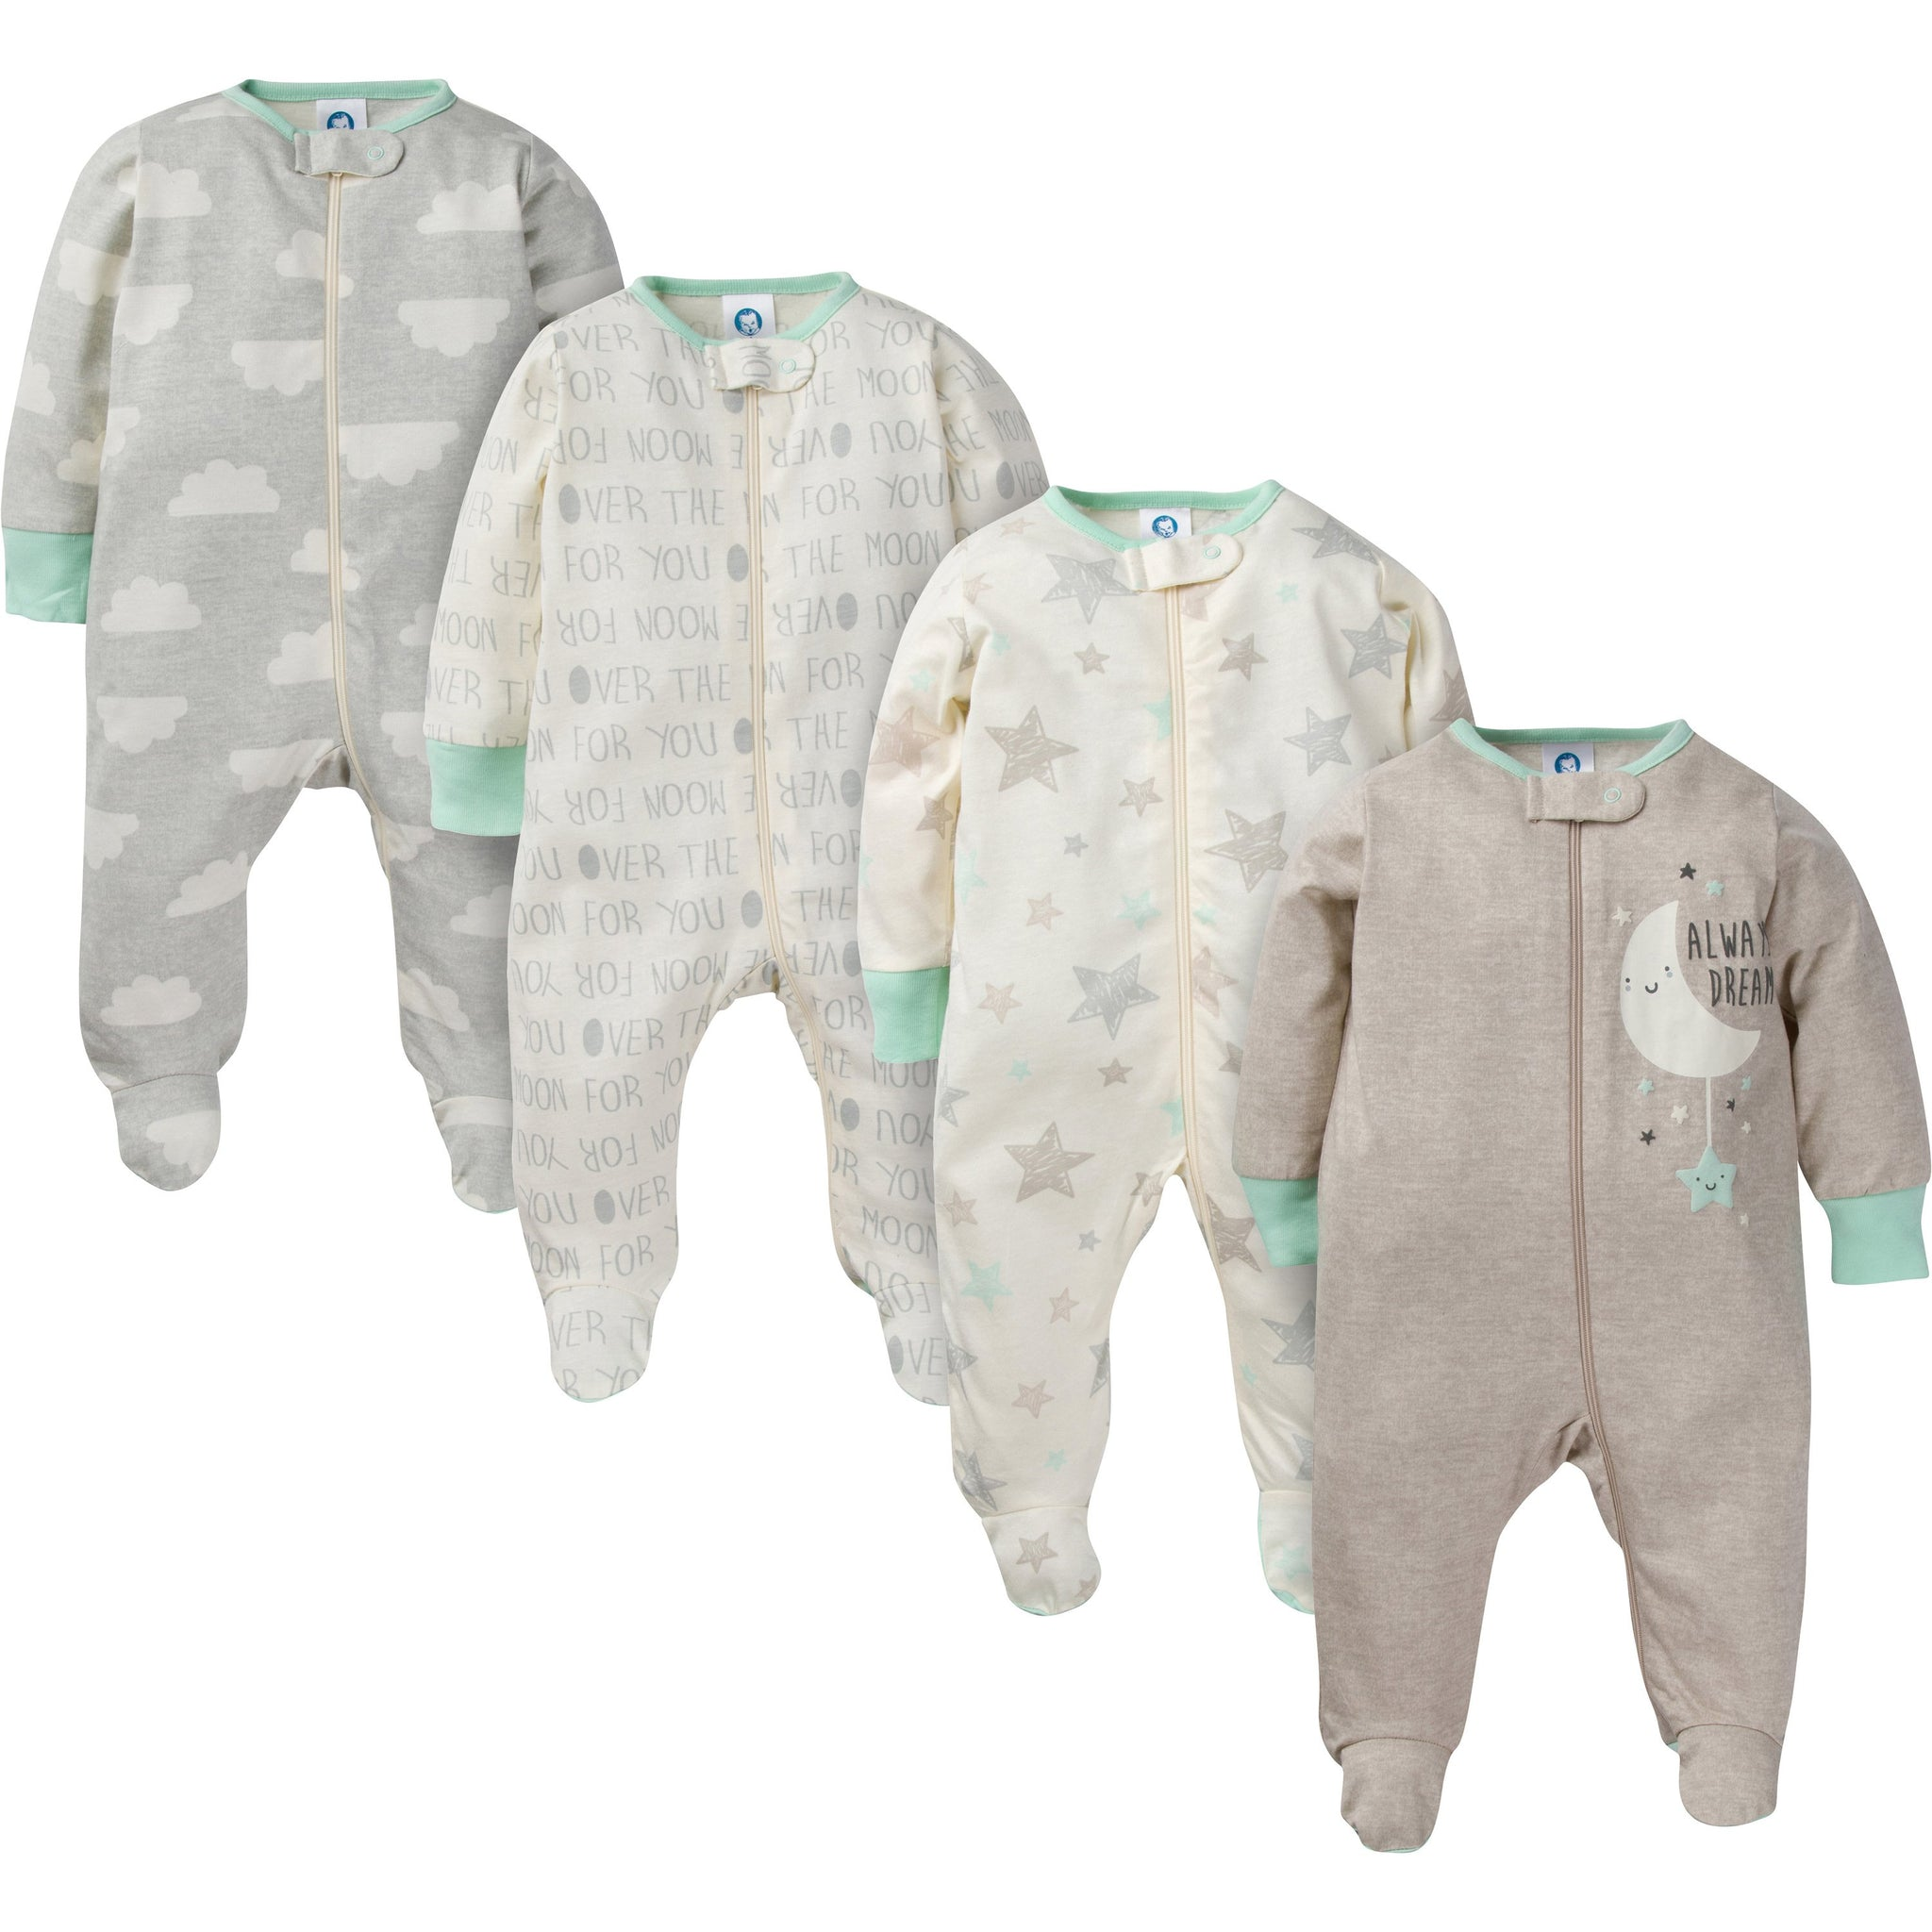 4-Pack Neutral Elephants Sleep N' Play